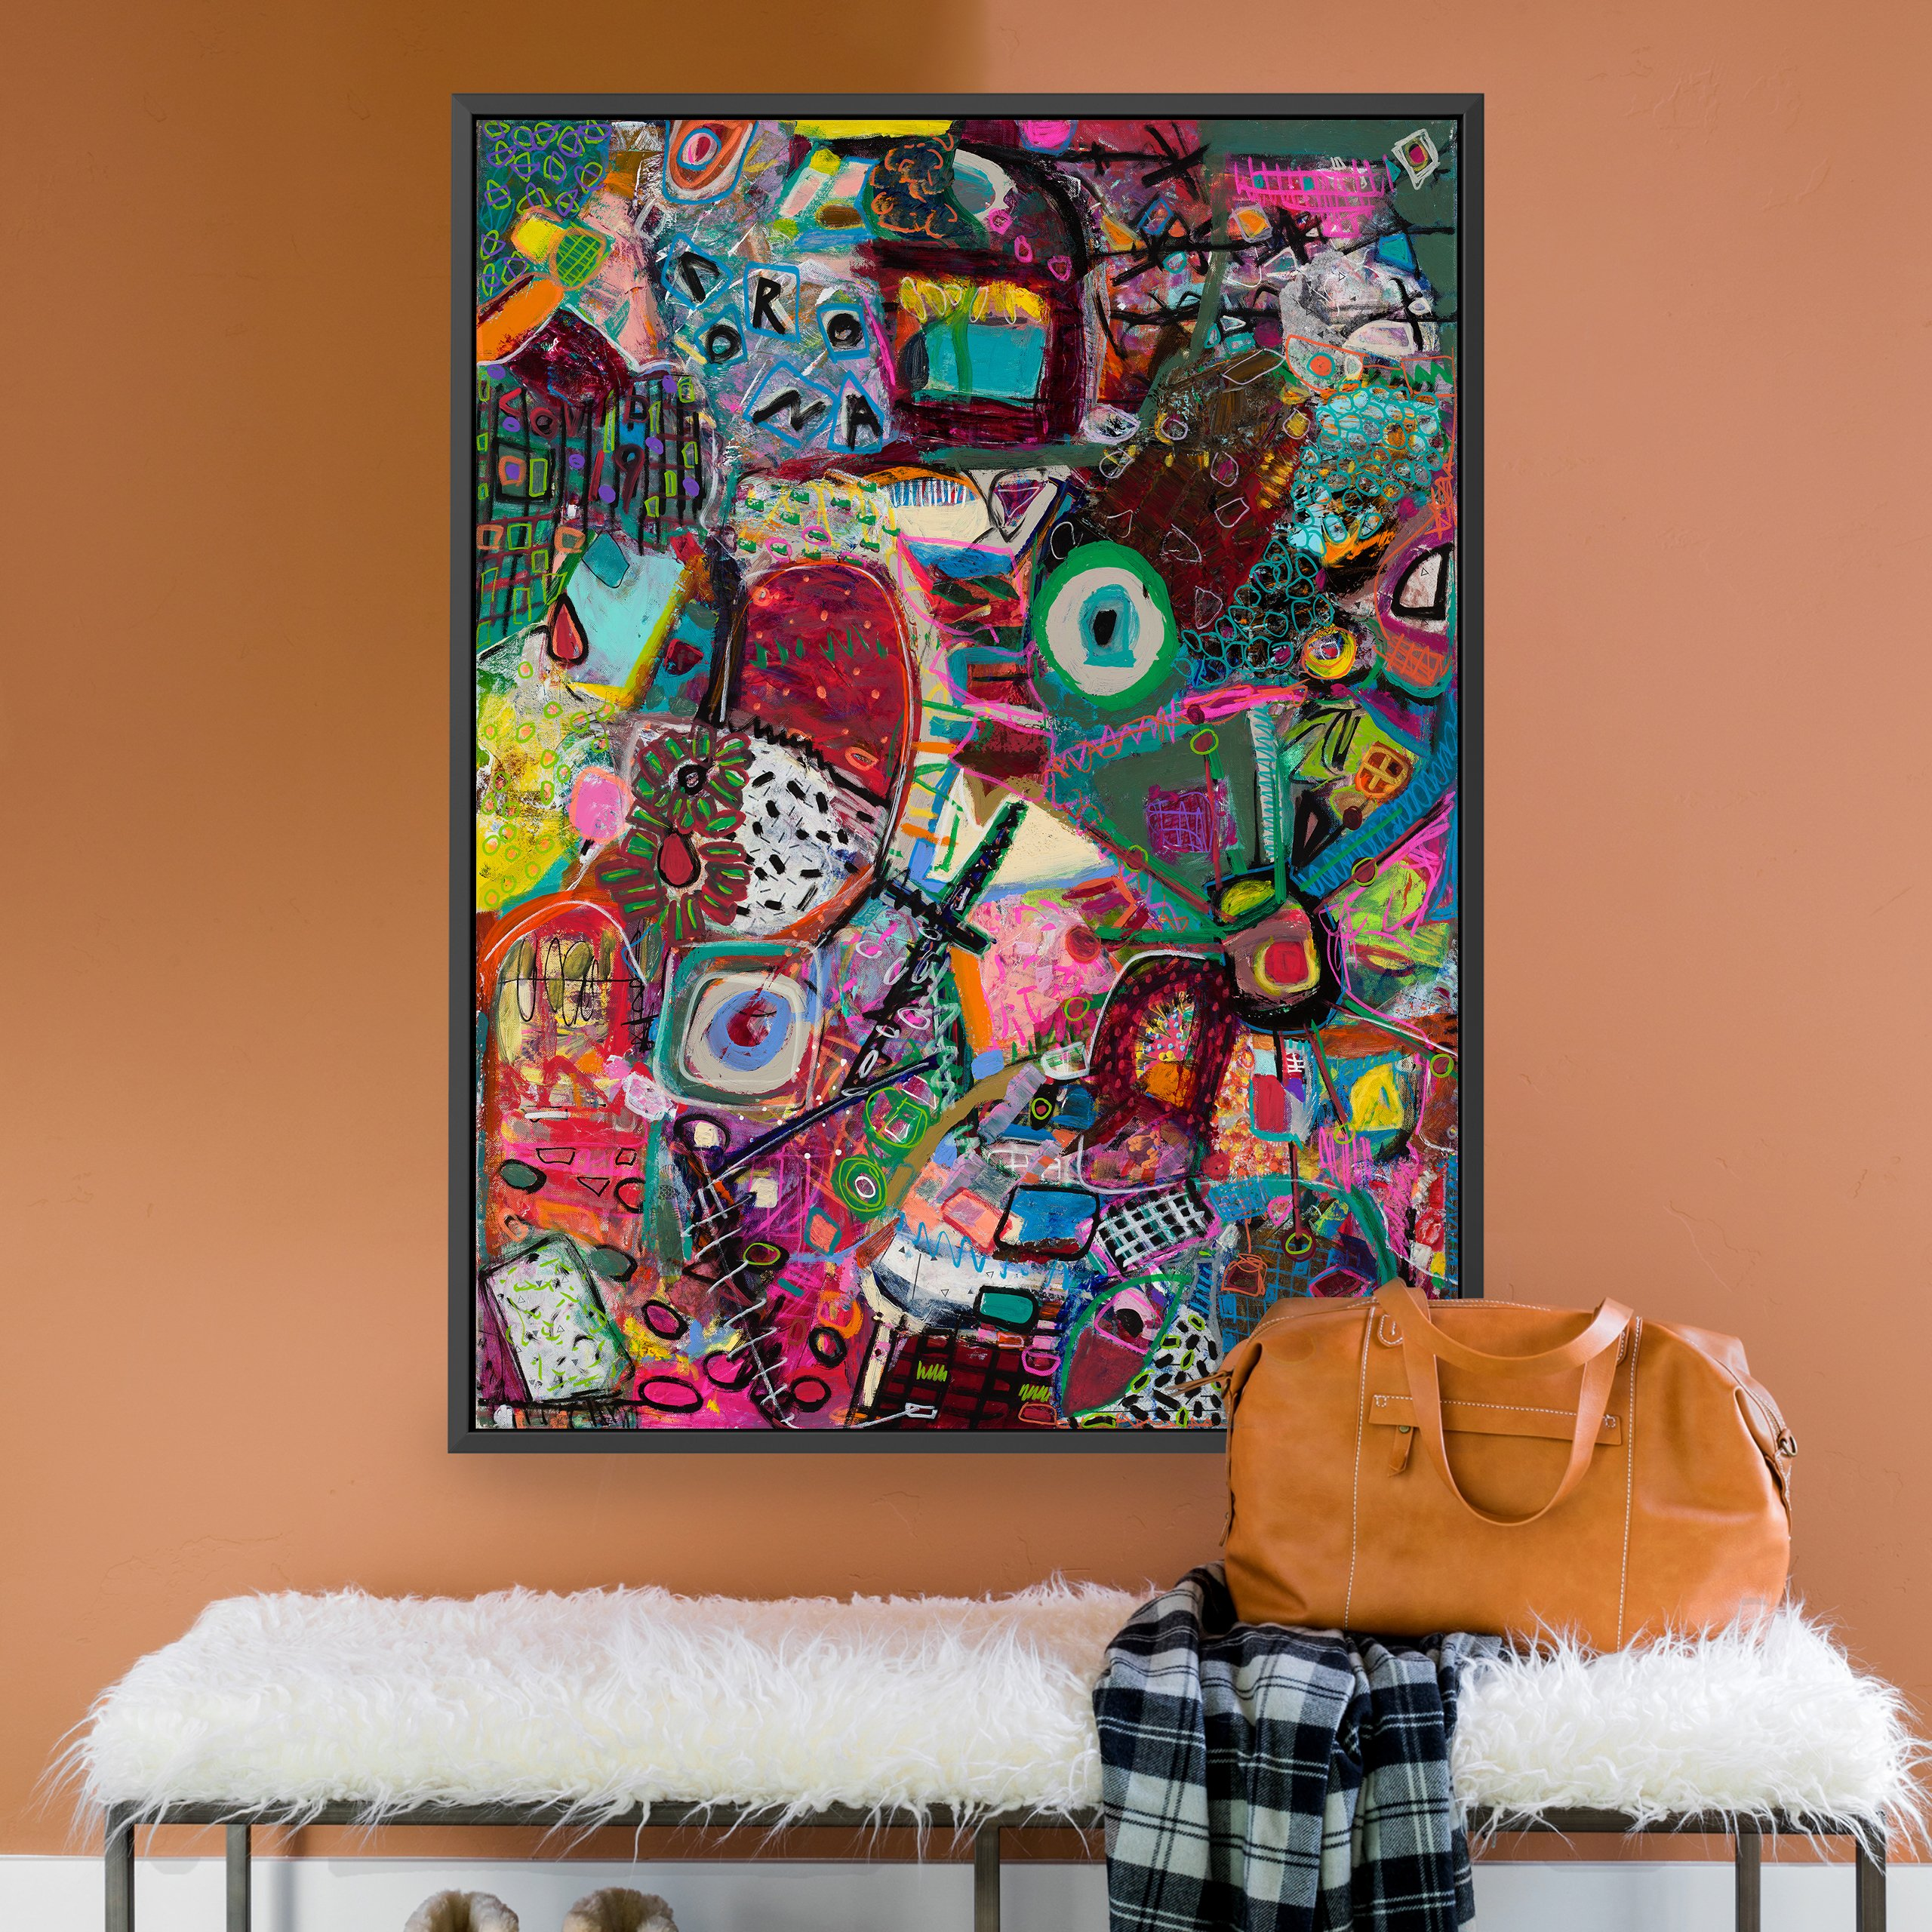 michal-rotman-loar-large-abstract-art